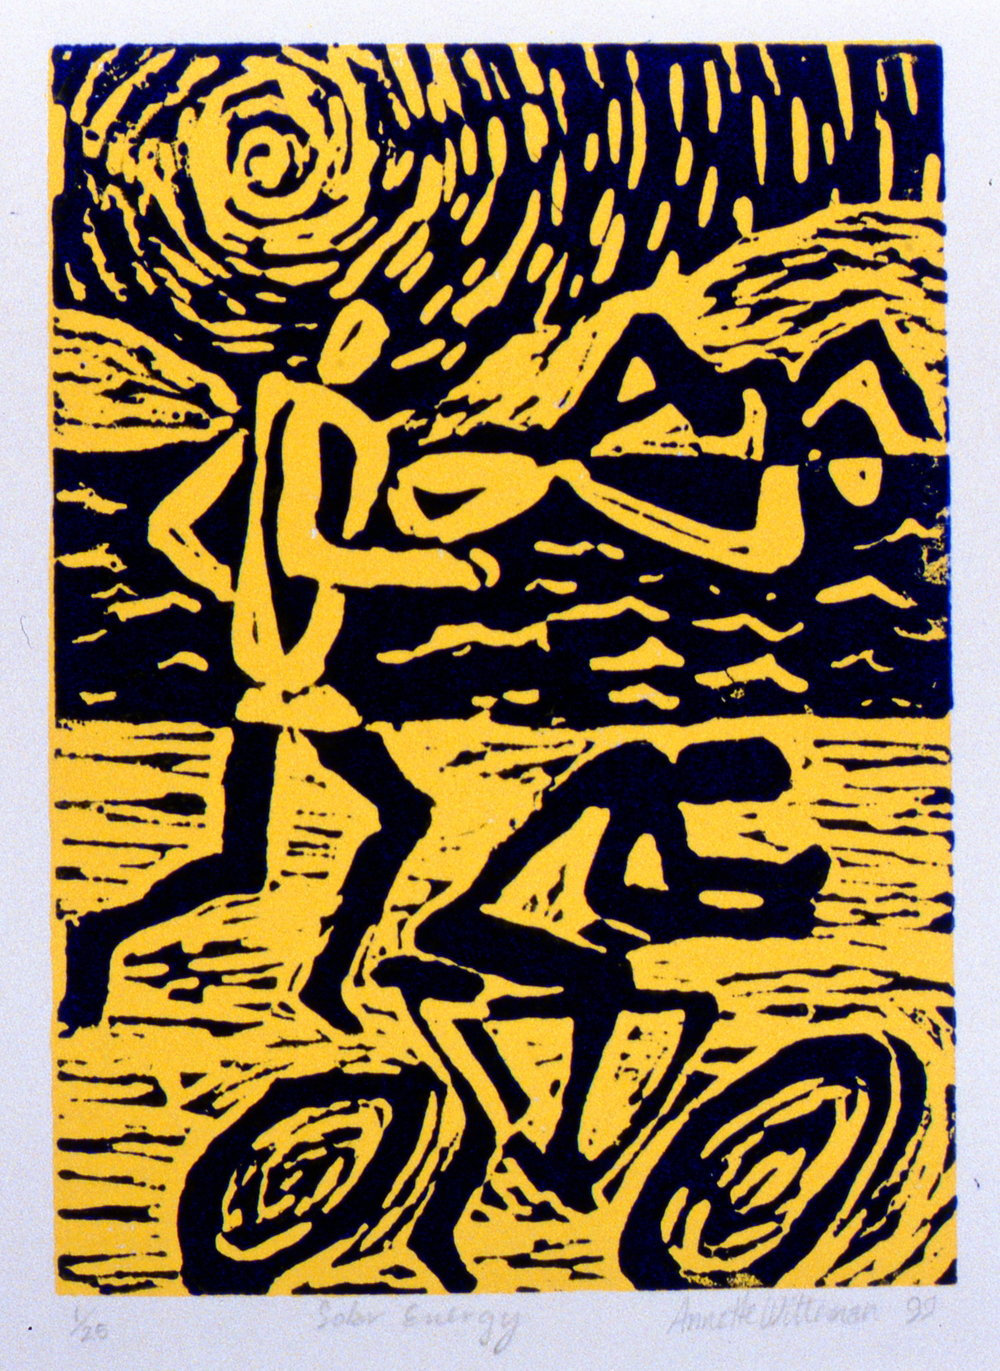 Solar Energy, The Spirit of Ironman Linocut Prints, edition 1/25, 1999, Annette Witteman, linocut print, 17.7 x 12.5 cm, 1999.02.08, gift of the artist